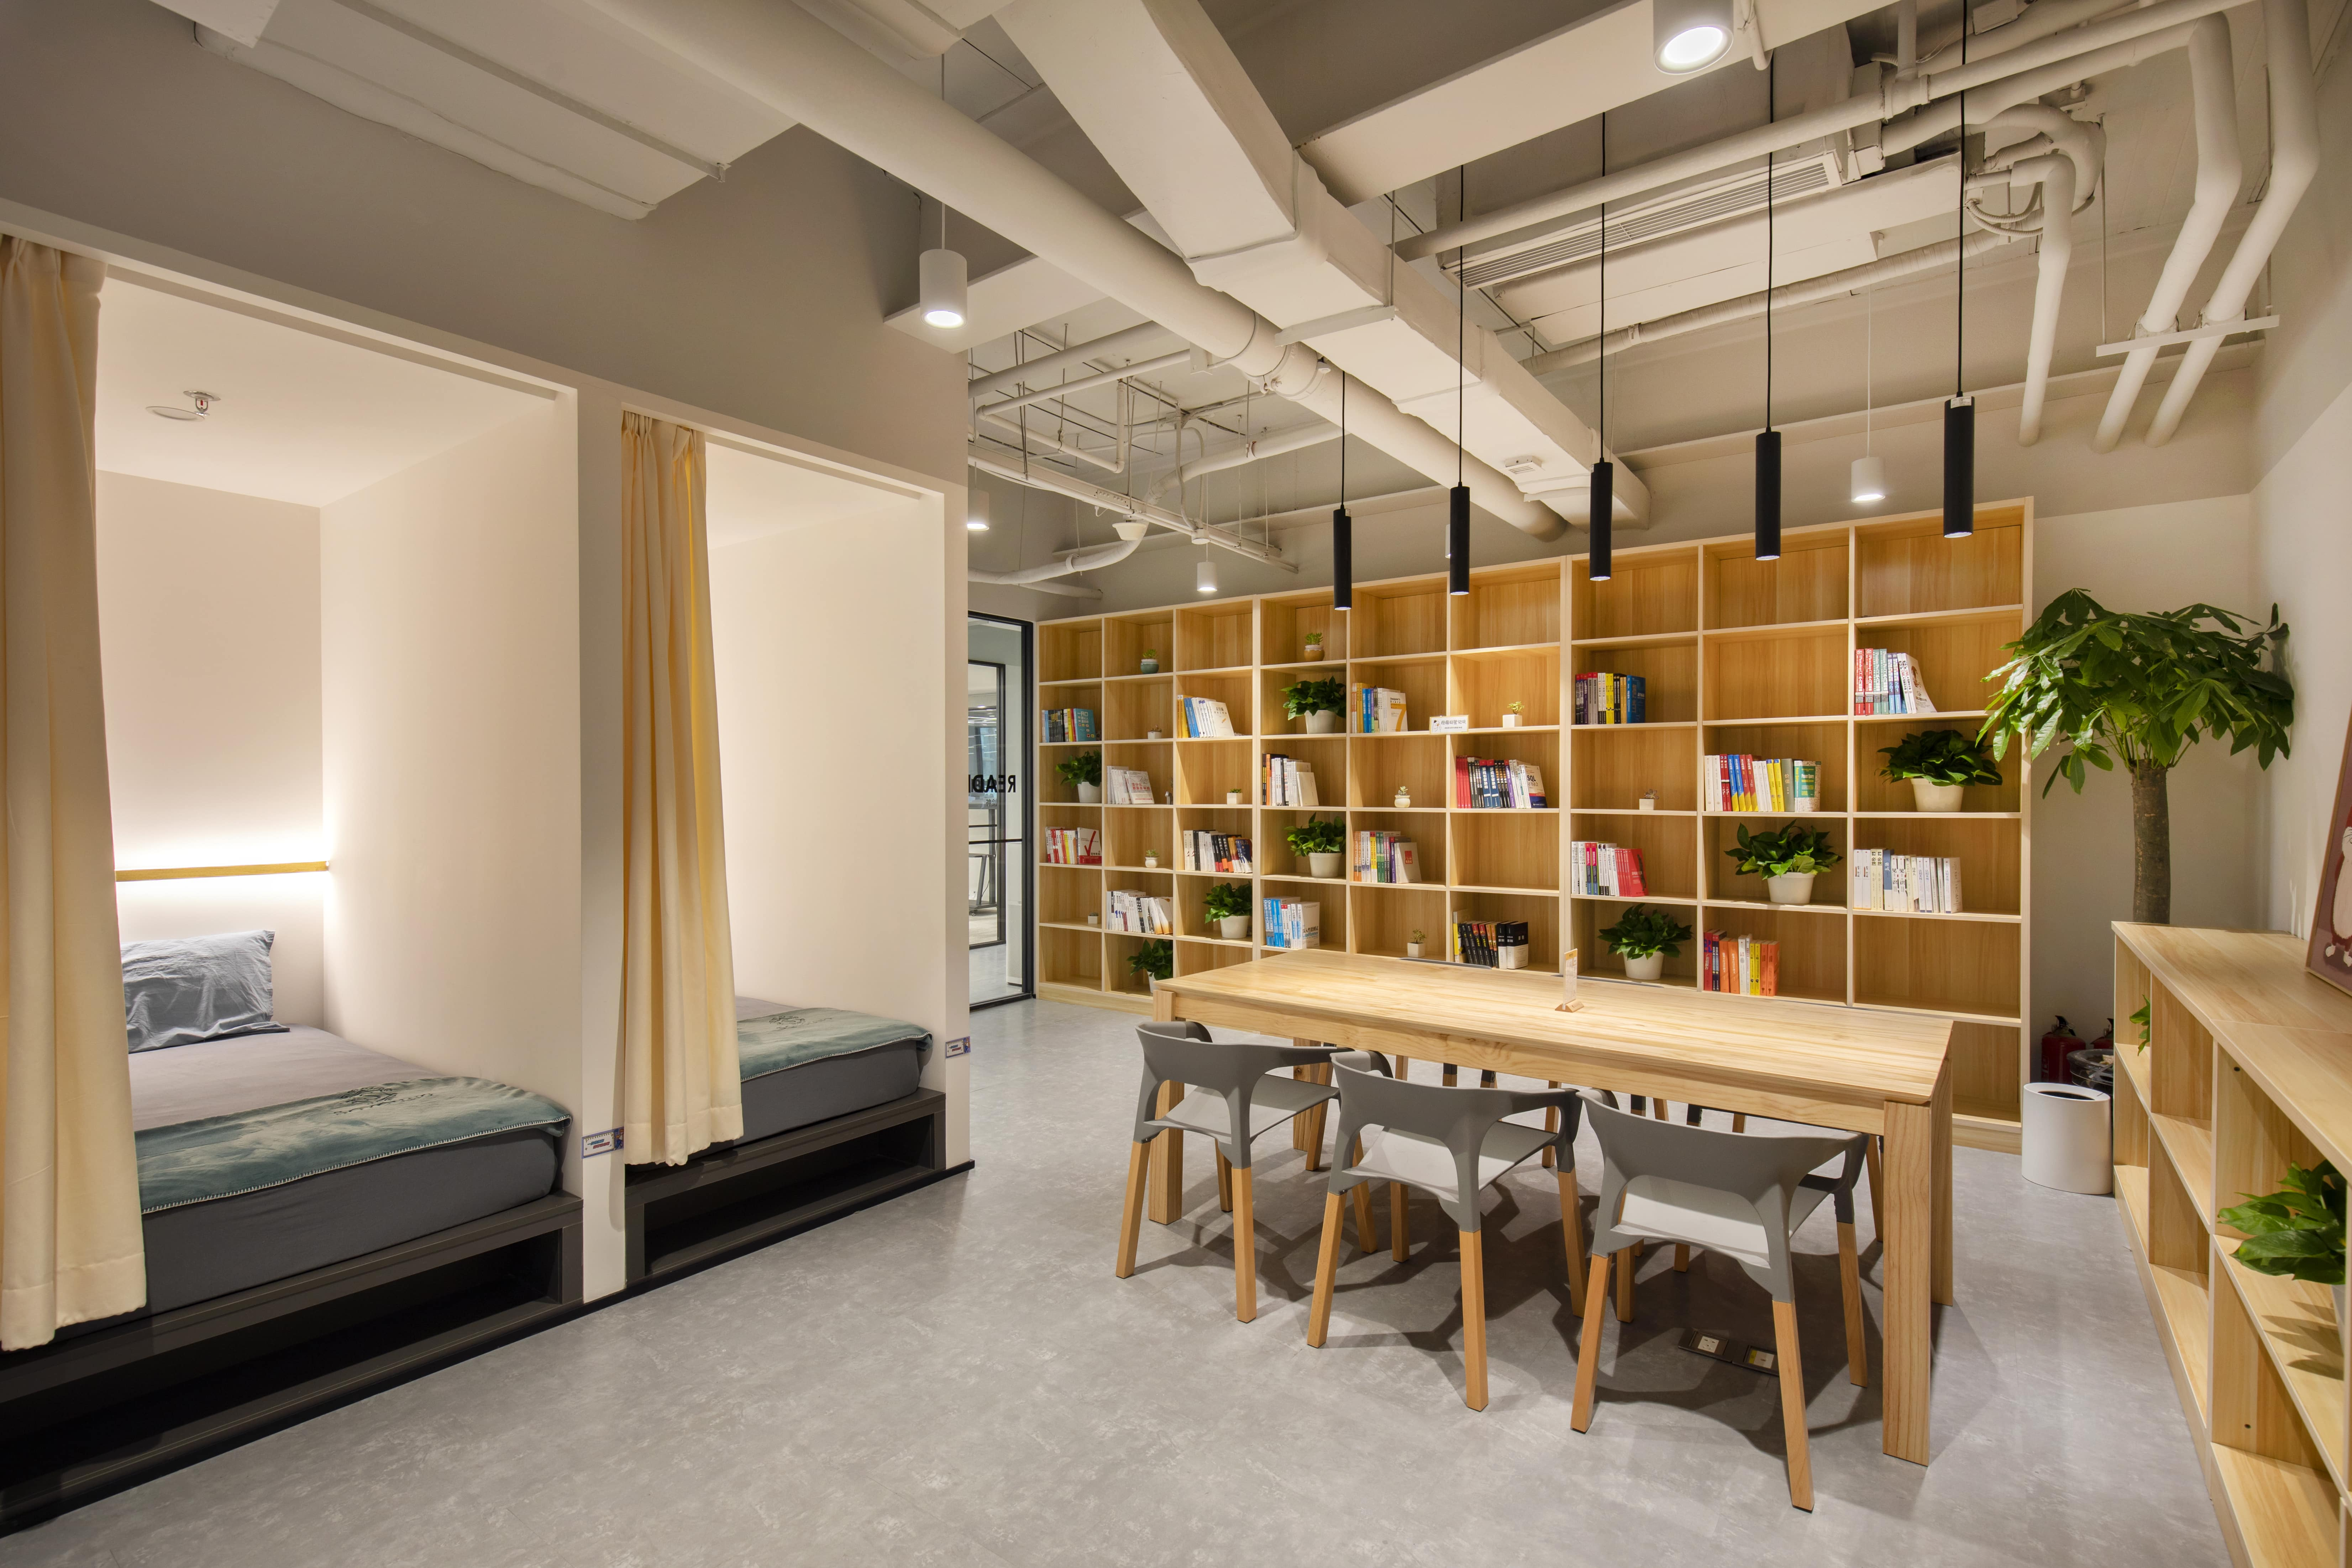 Space Matrix designed and built the Bole Games Beijing workplace to have an entire floor of employee-centric facilities such as a library and nap rooms